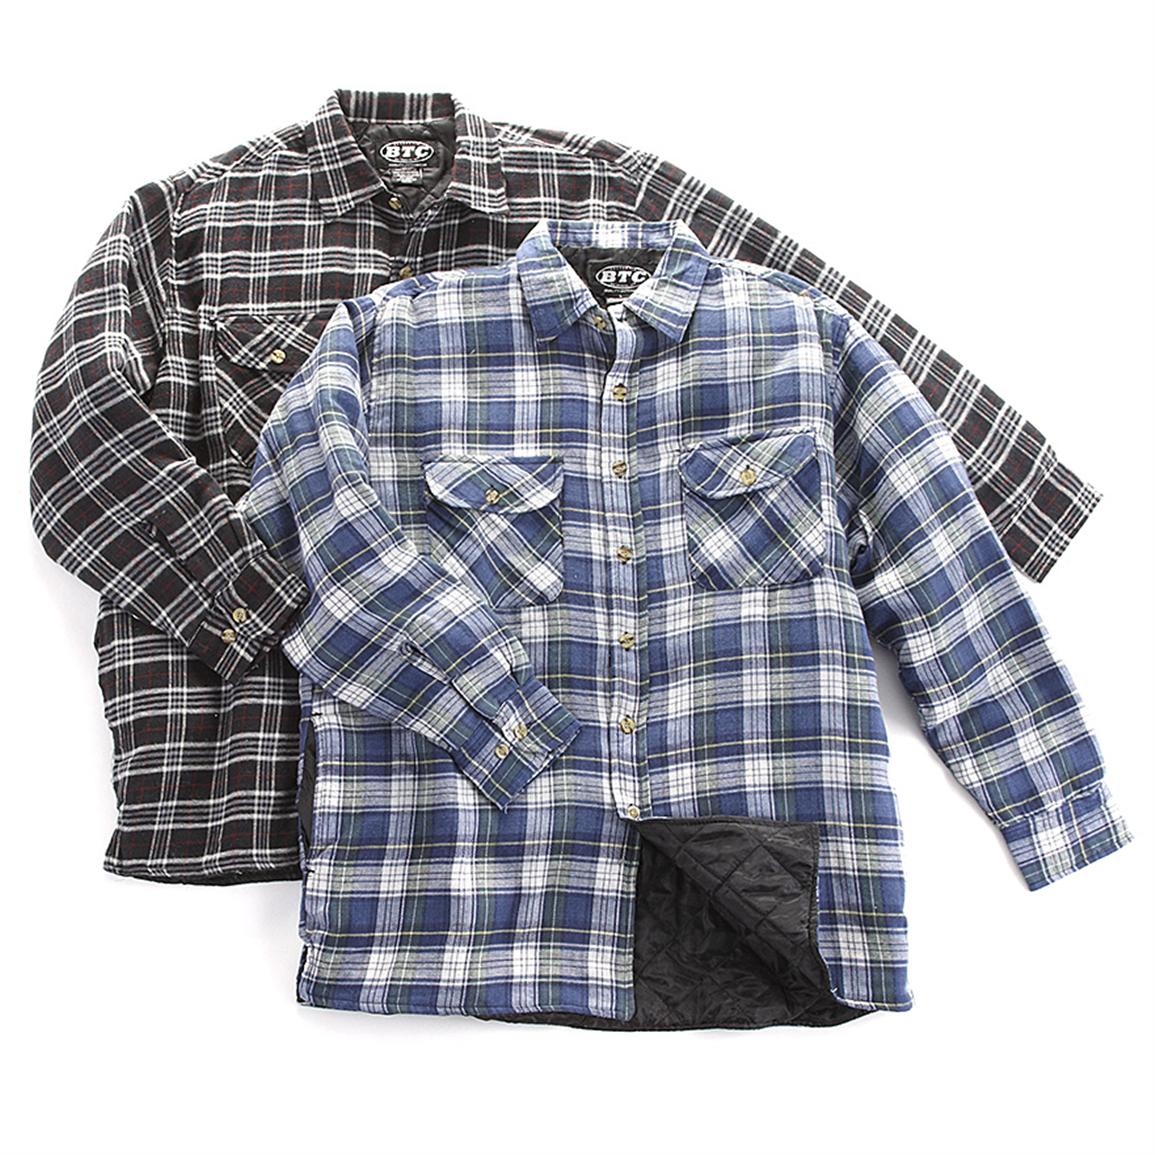 Quilted Flannel Shirt | Carhartt Flannel Shirts | Duluth Trading Flannel